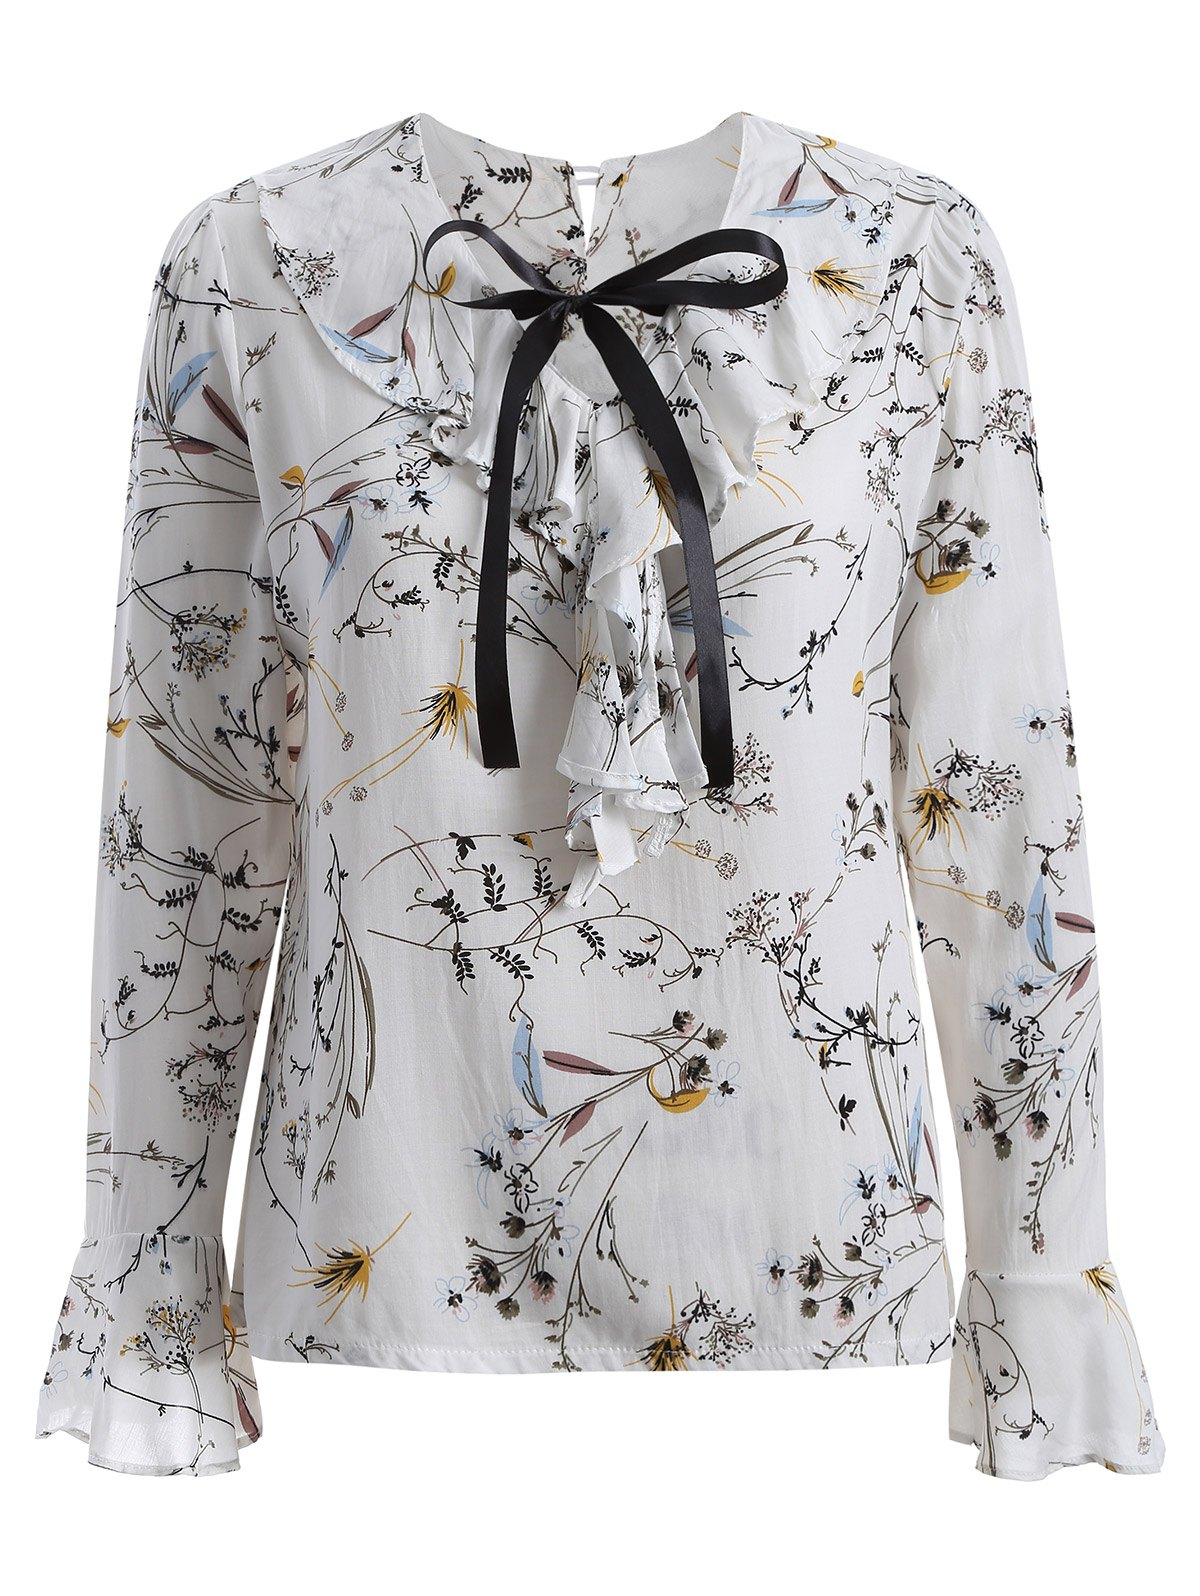 2018 pussy bow flower printed ruffled blouse in white 3xl rosegal latest pussy bow flower printed ruffled blouse mightylinksfo